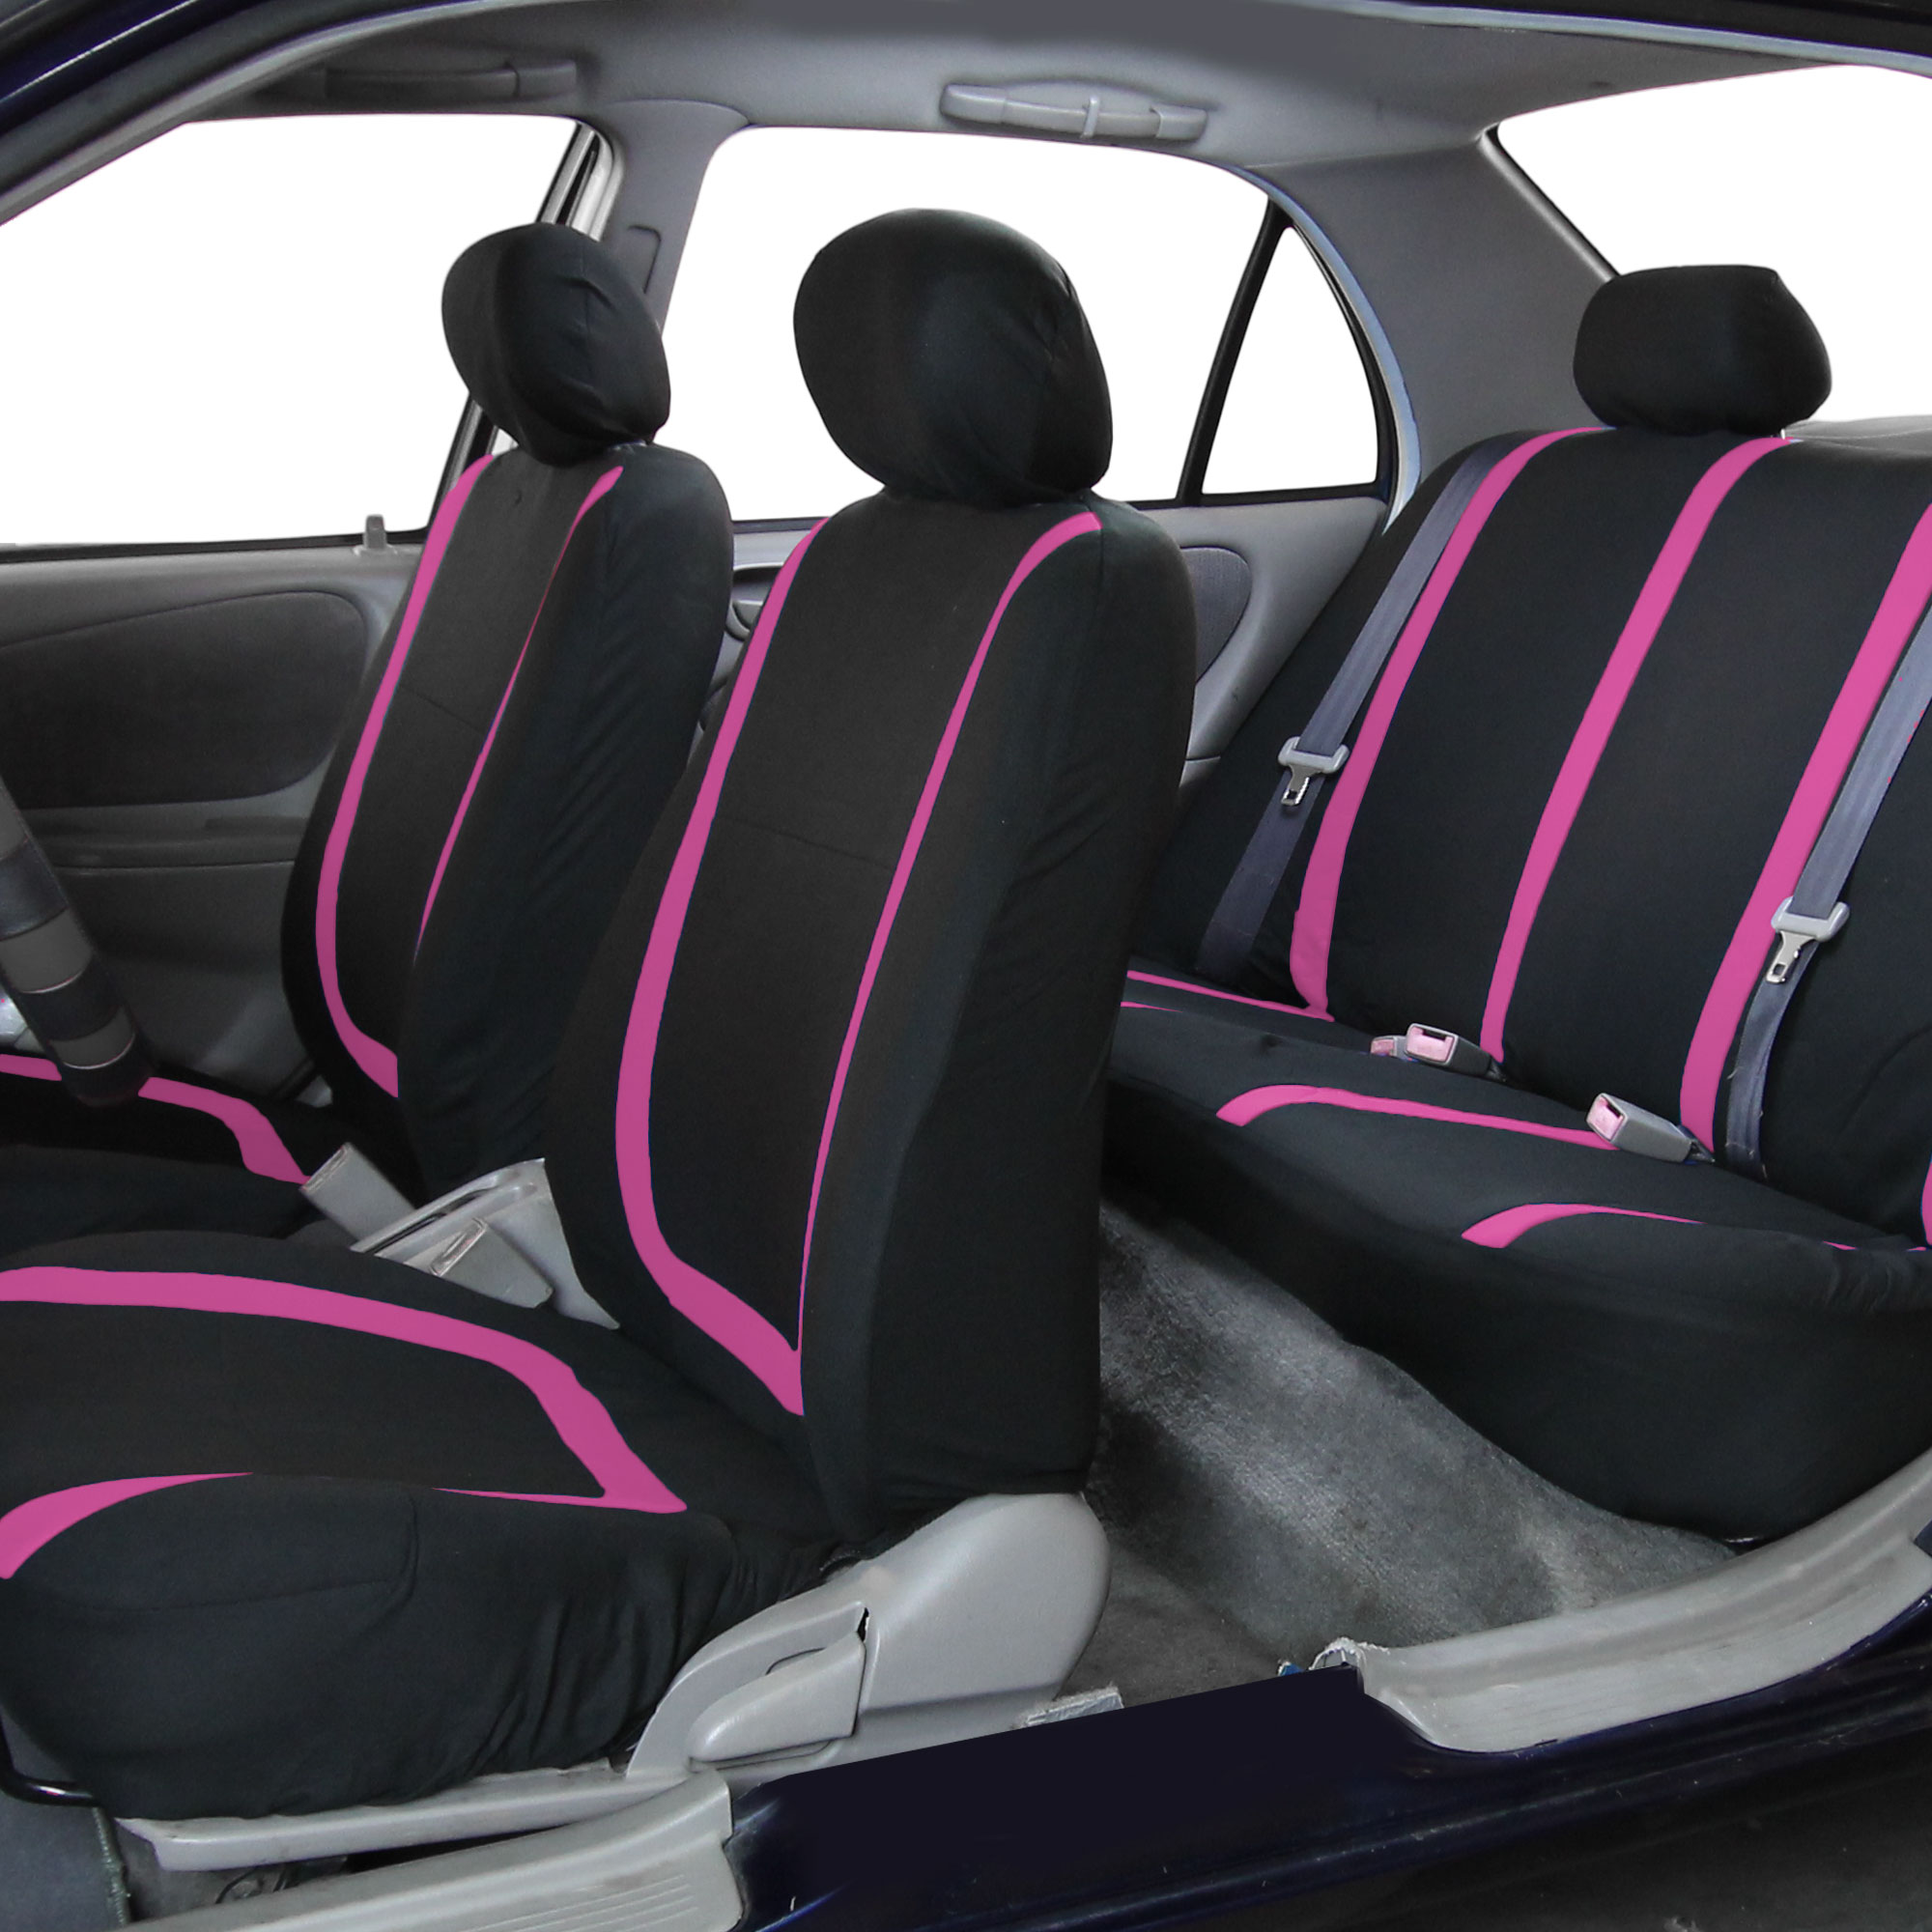 Auto Seat Covers For Car Sedan Truck Van